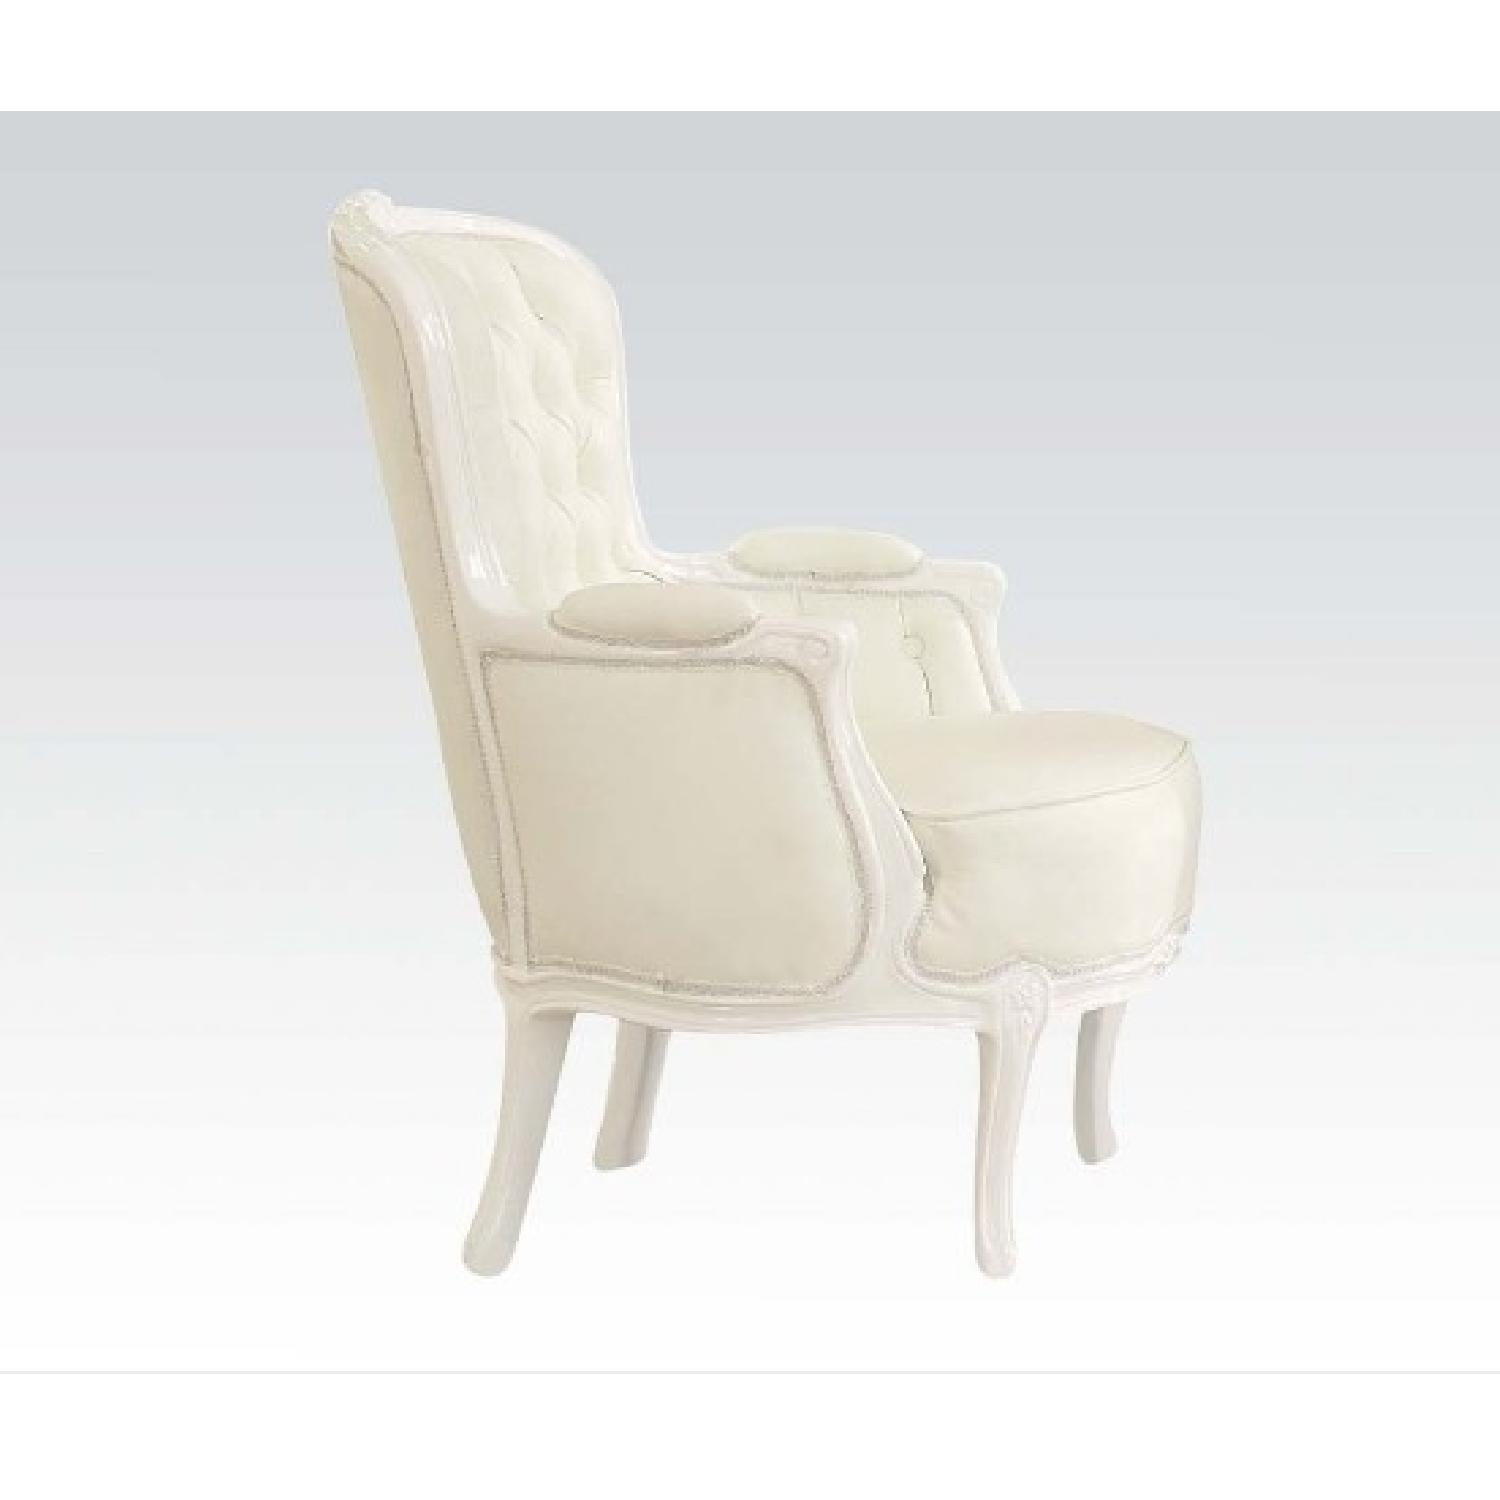 White Accent Chair w/ Button Tufted Back & Padded Seat & Armrests - image-0